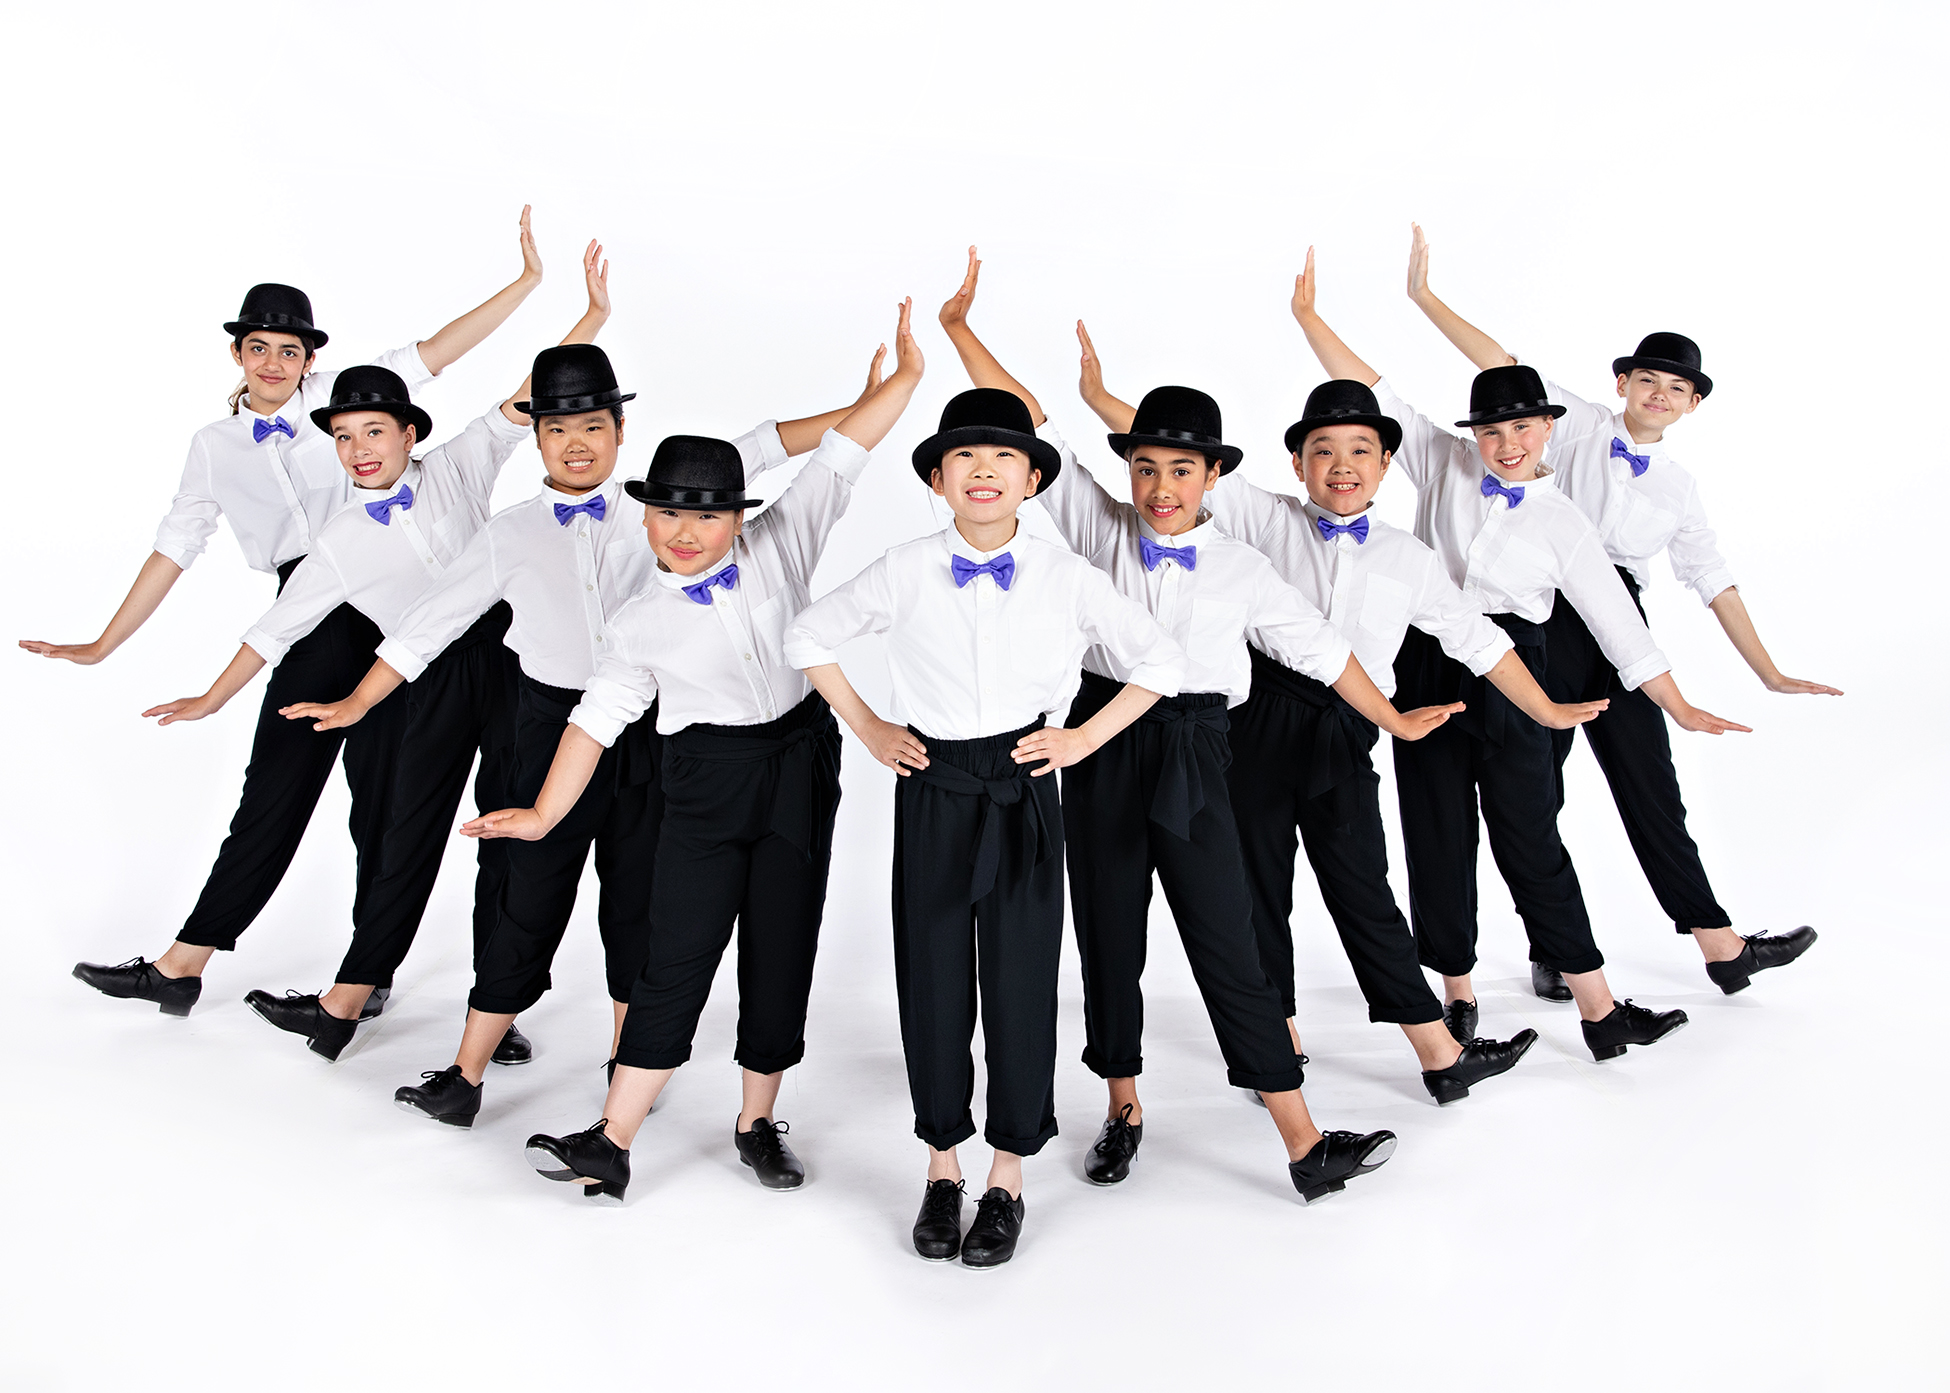 dance school photos, vancouver dance, gemini visuals photography